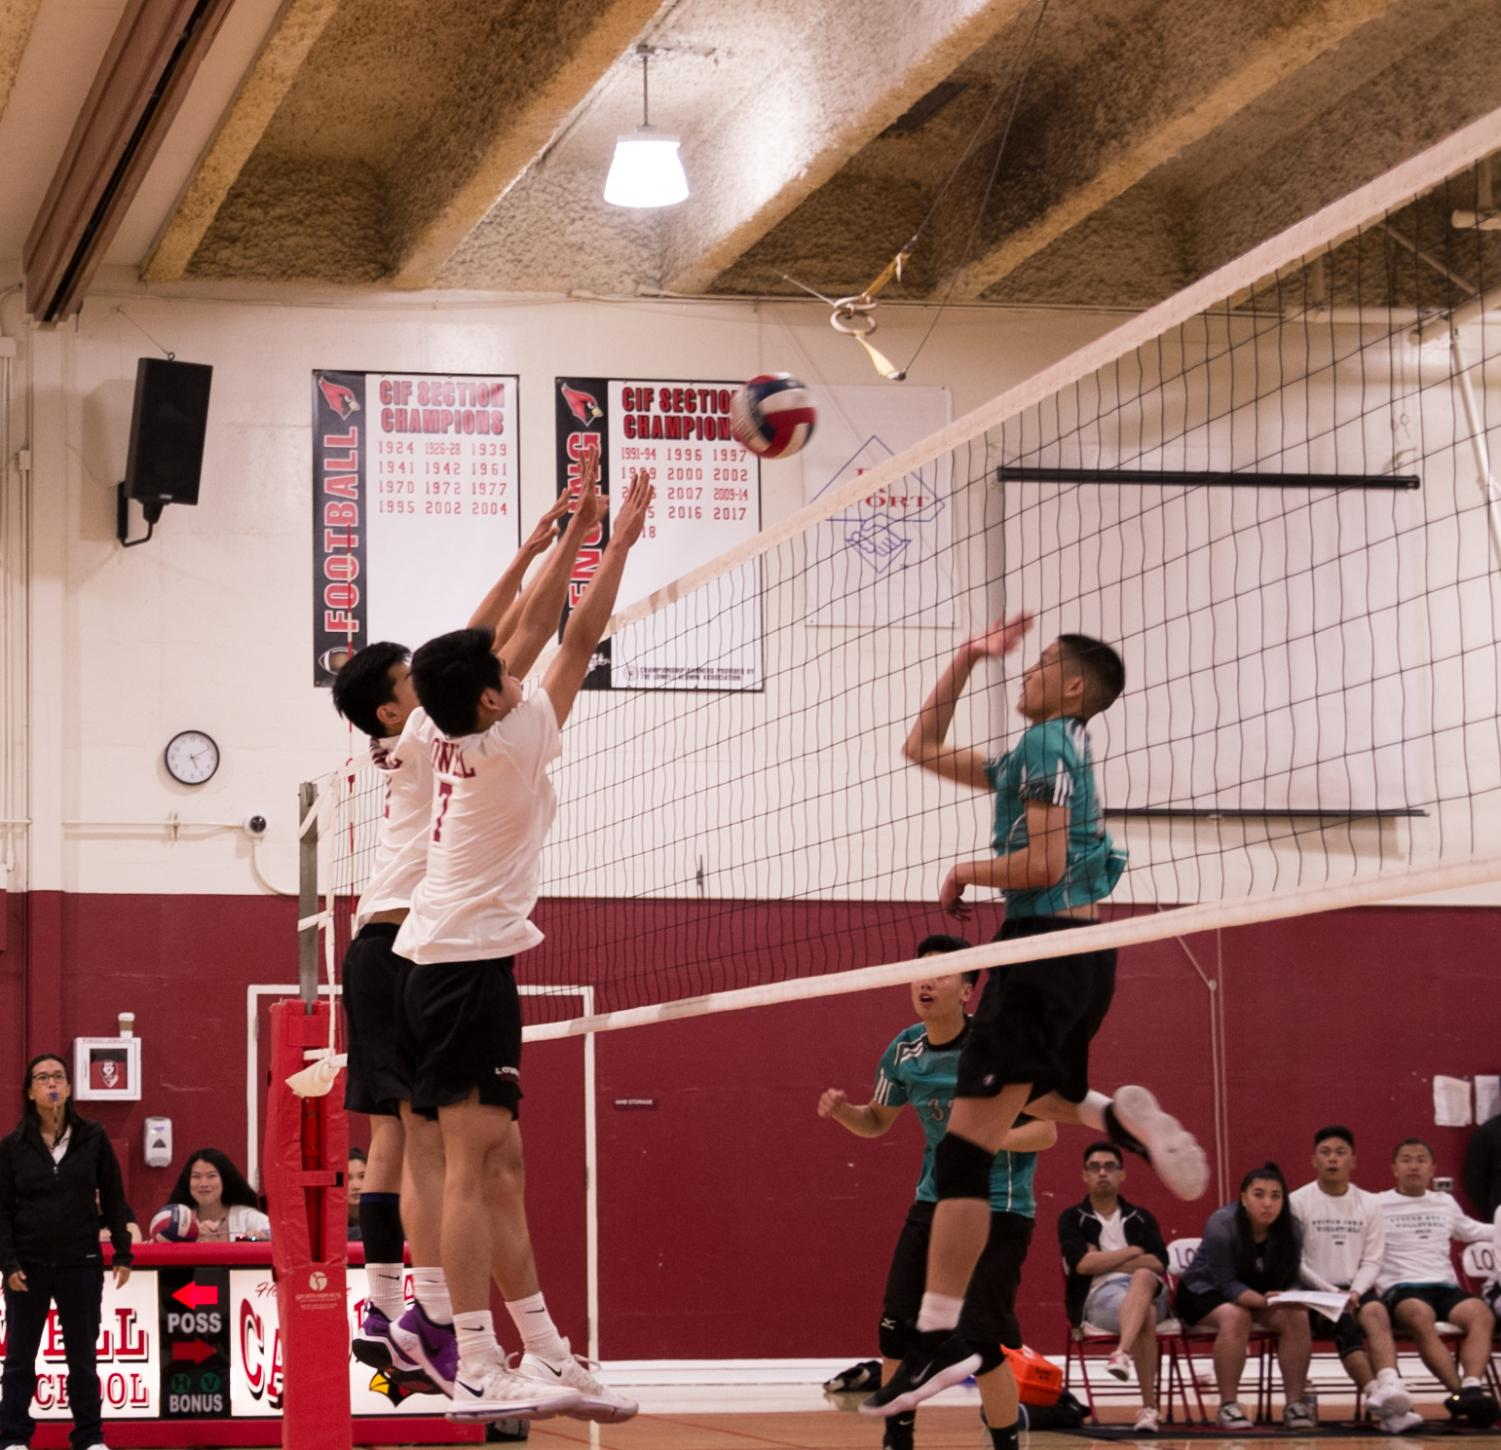 Sophomore outside hitter Brandon Bui and middle blocker Derek Quach work in tandem to knock down the Burton Pumas during the home game on April 24.